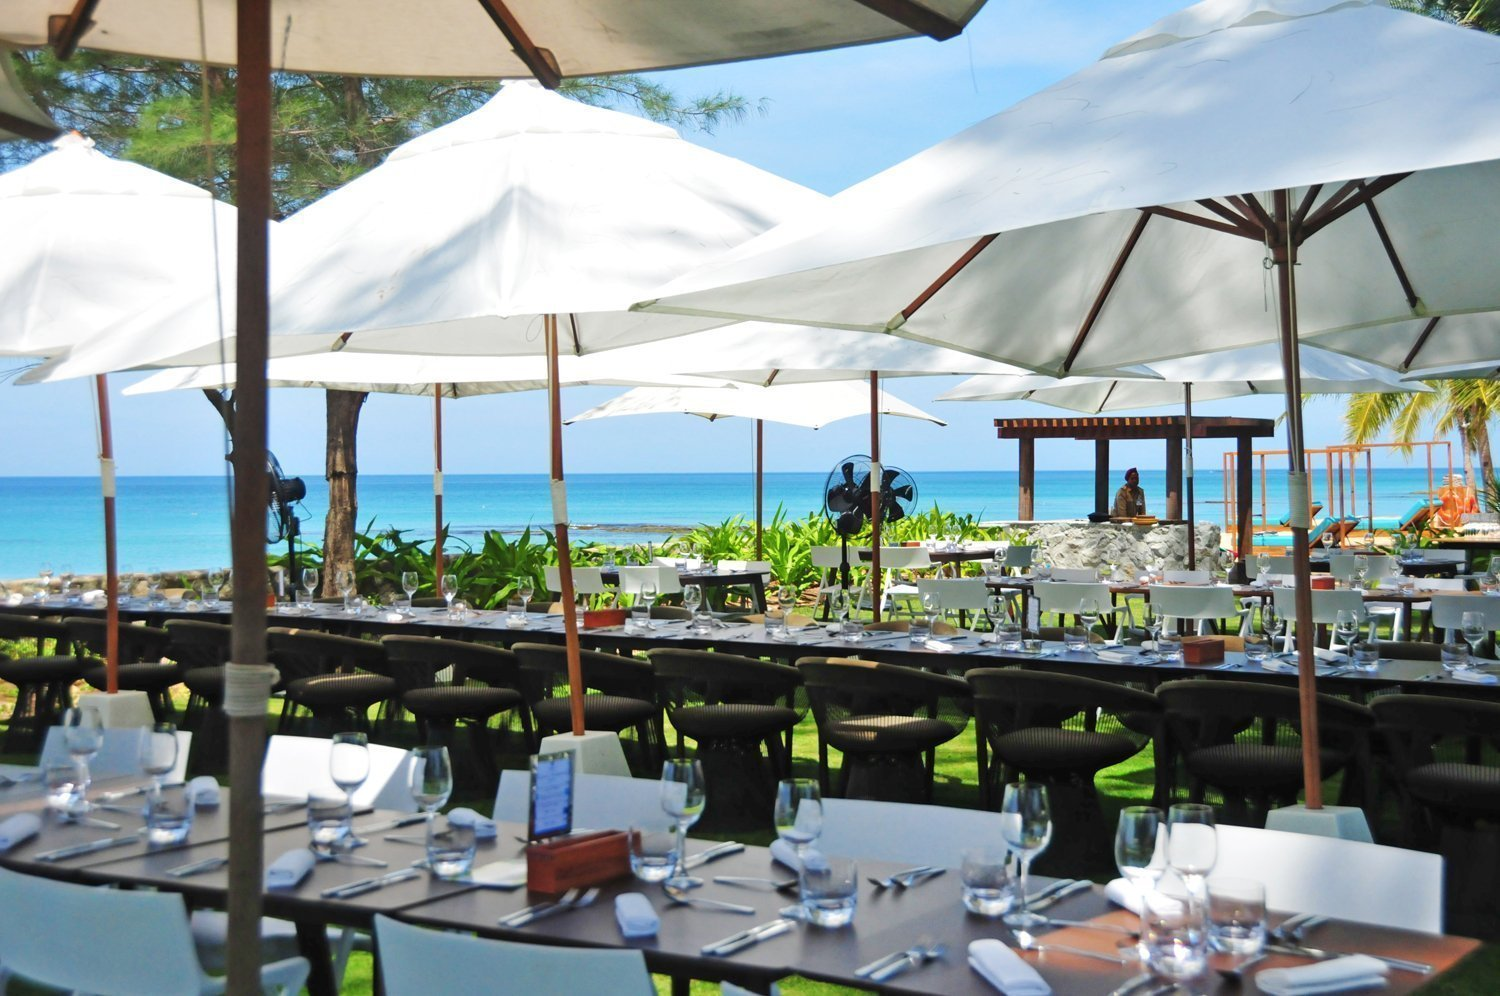 The Best Sunday Lunch Not The Only in Phuket